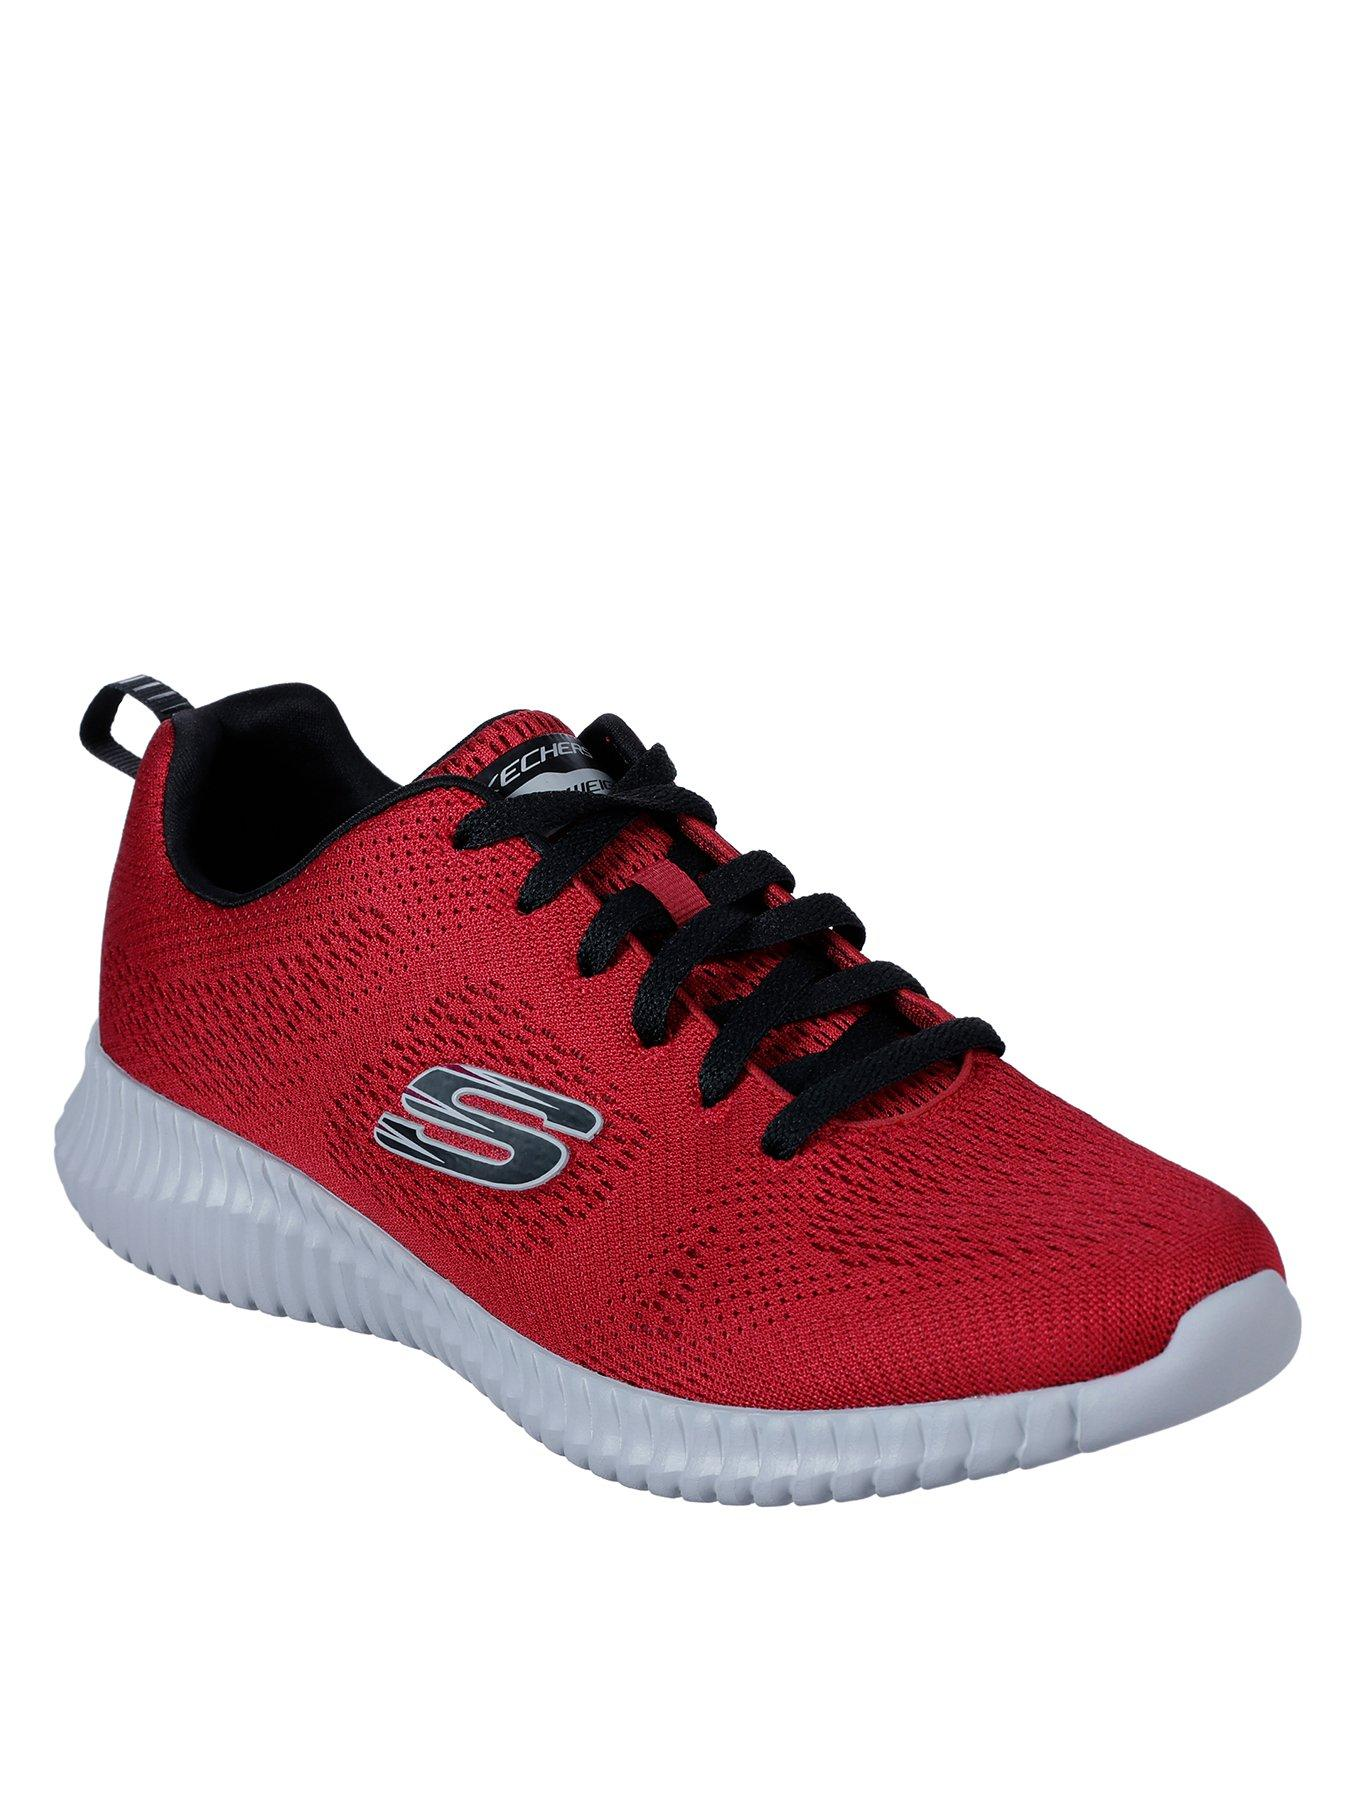 Skechers Lace up Mesh Jogger With Air cooled Memory Foam